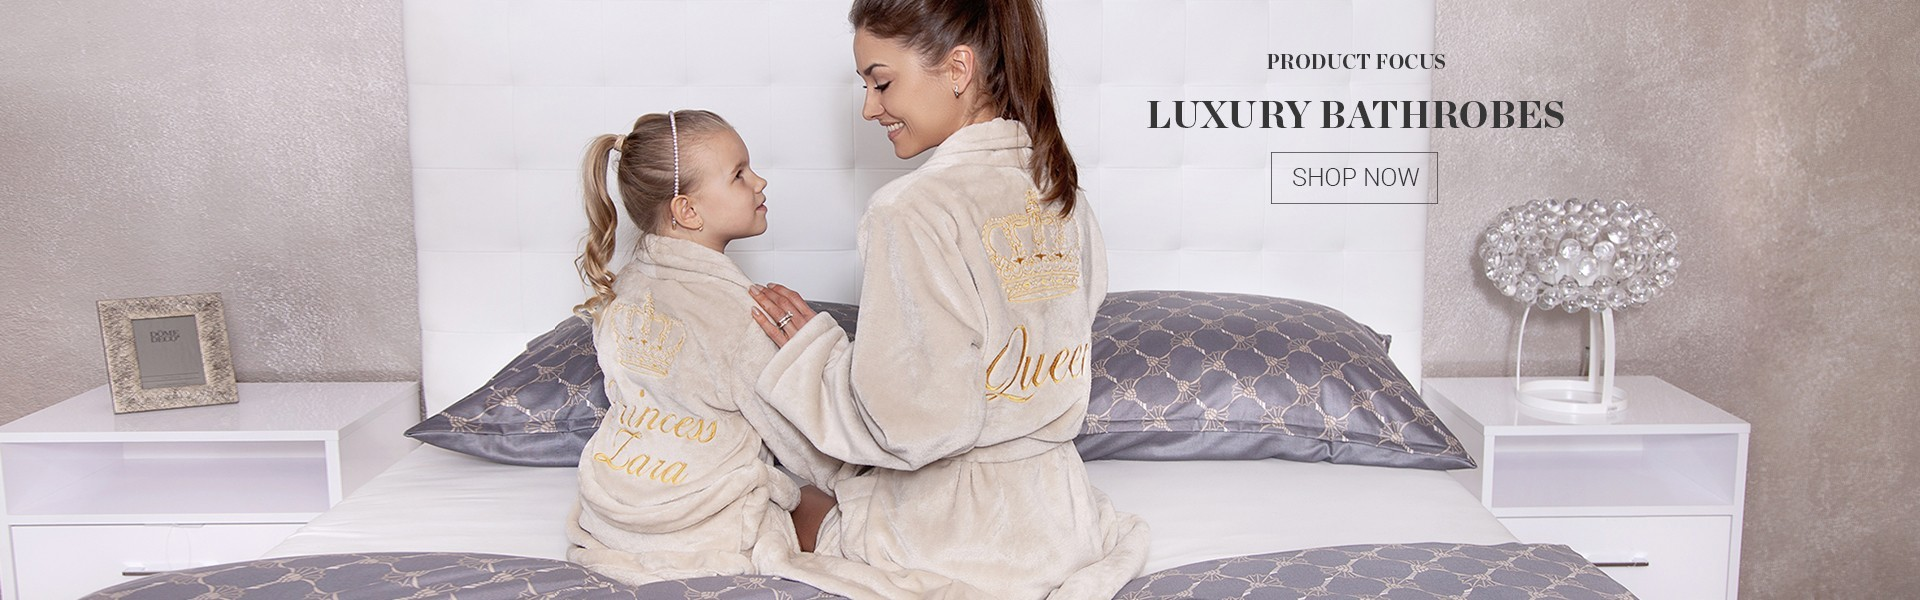 Fleece personalised bathrobes